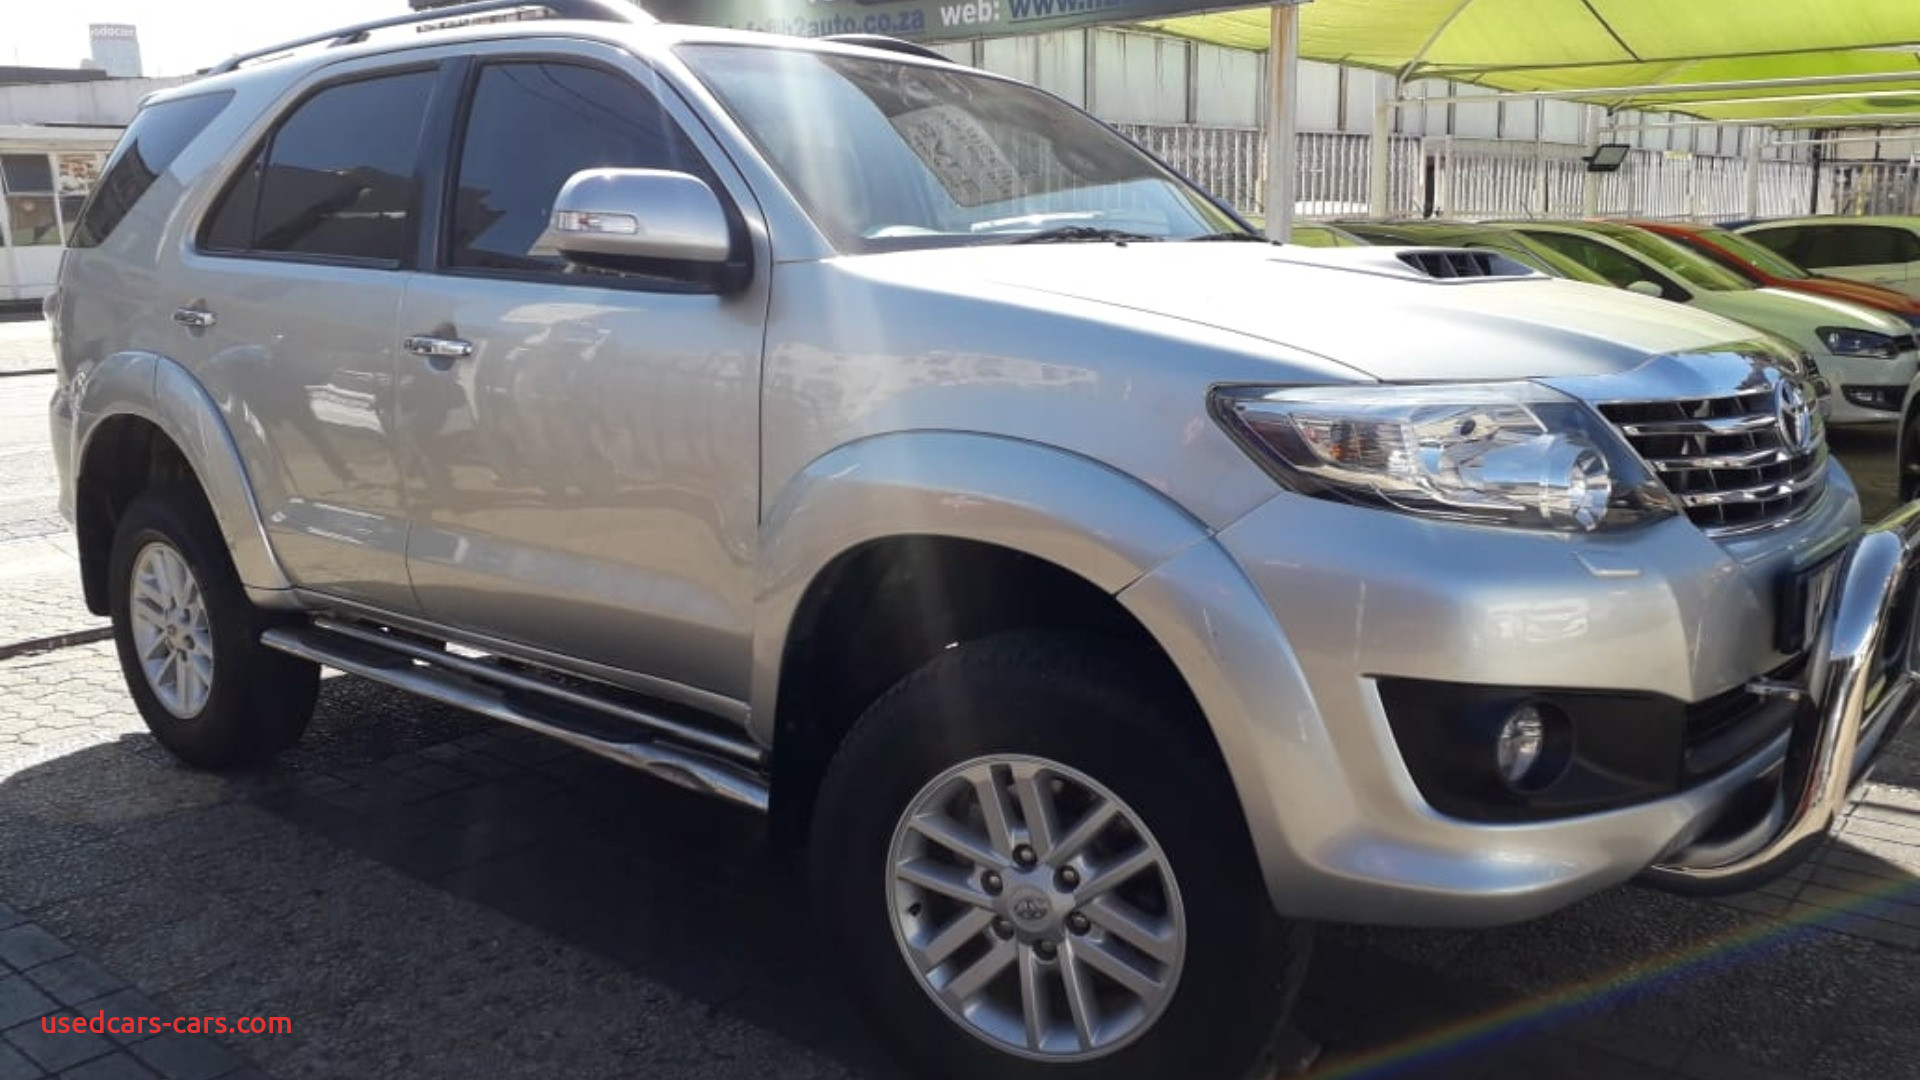 Used Cars for Sale In Gauteng Beautiful toyota fortuner fortuner 3 0d 4d 4x4 Limited for Sale In